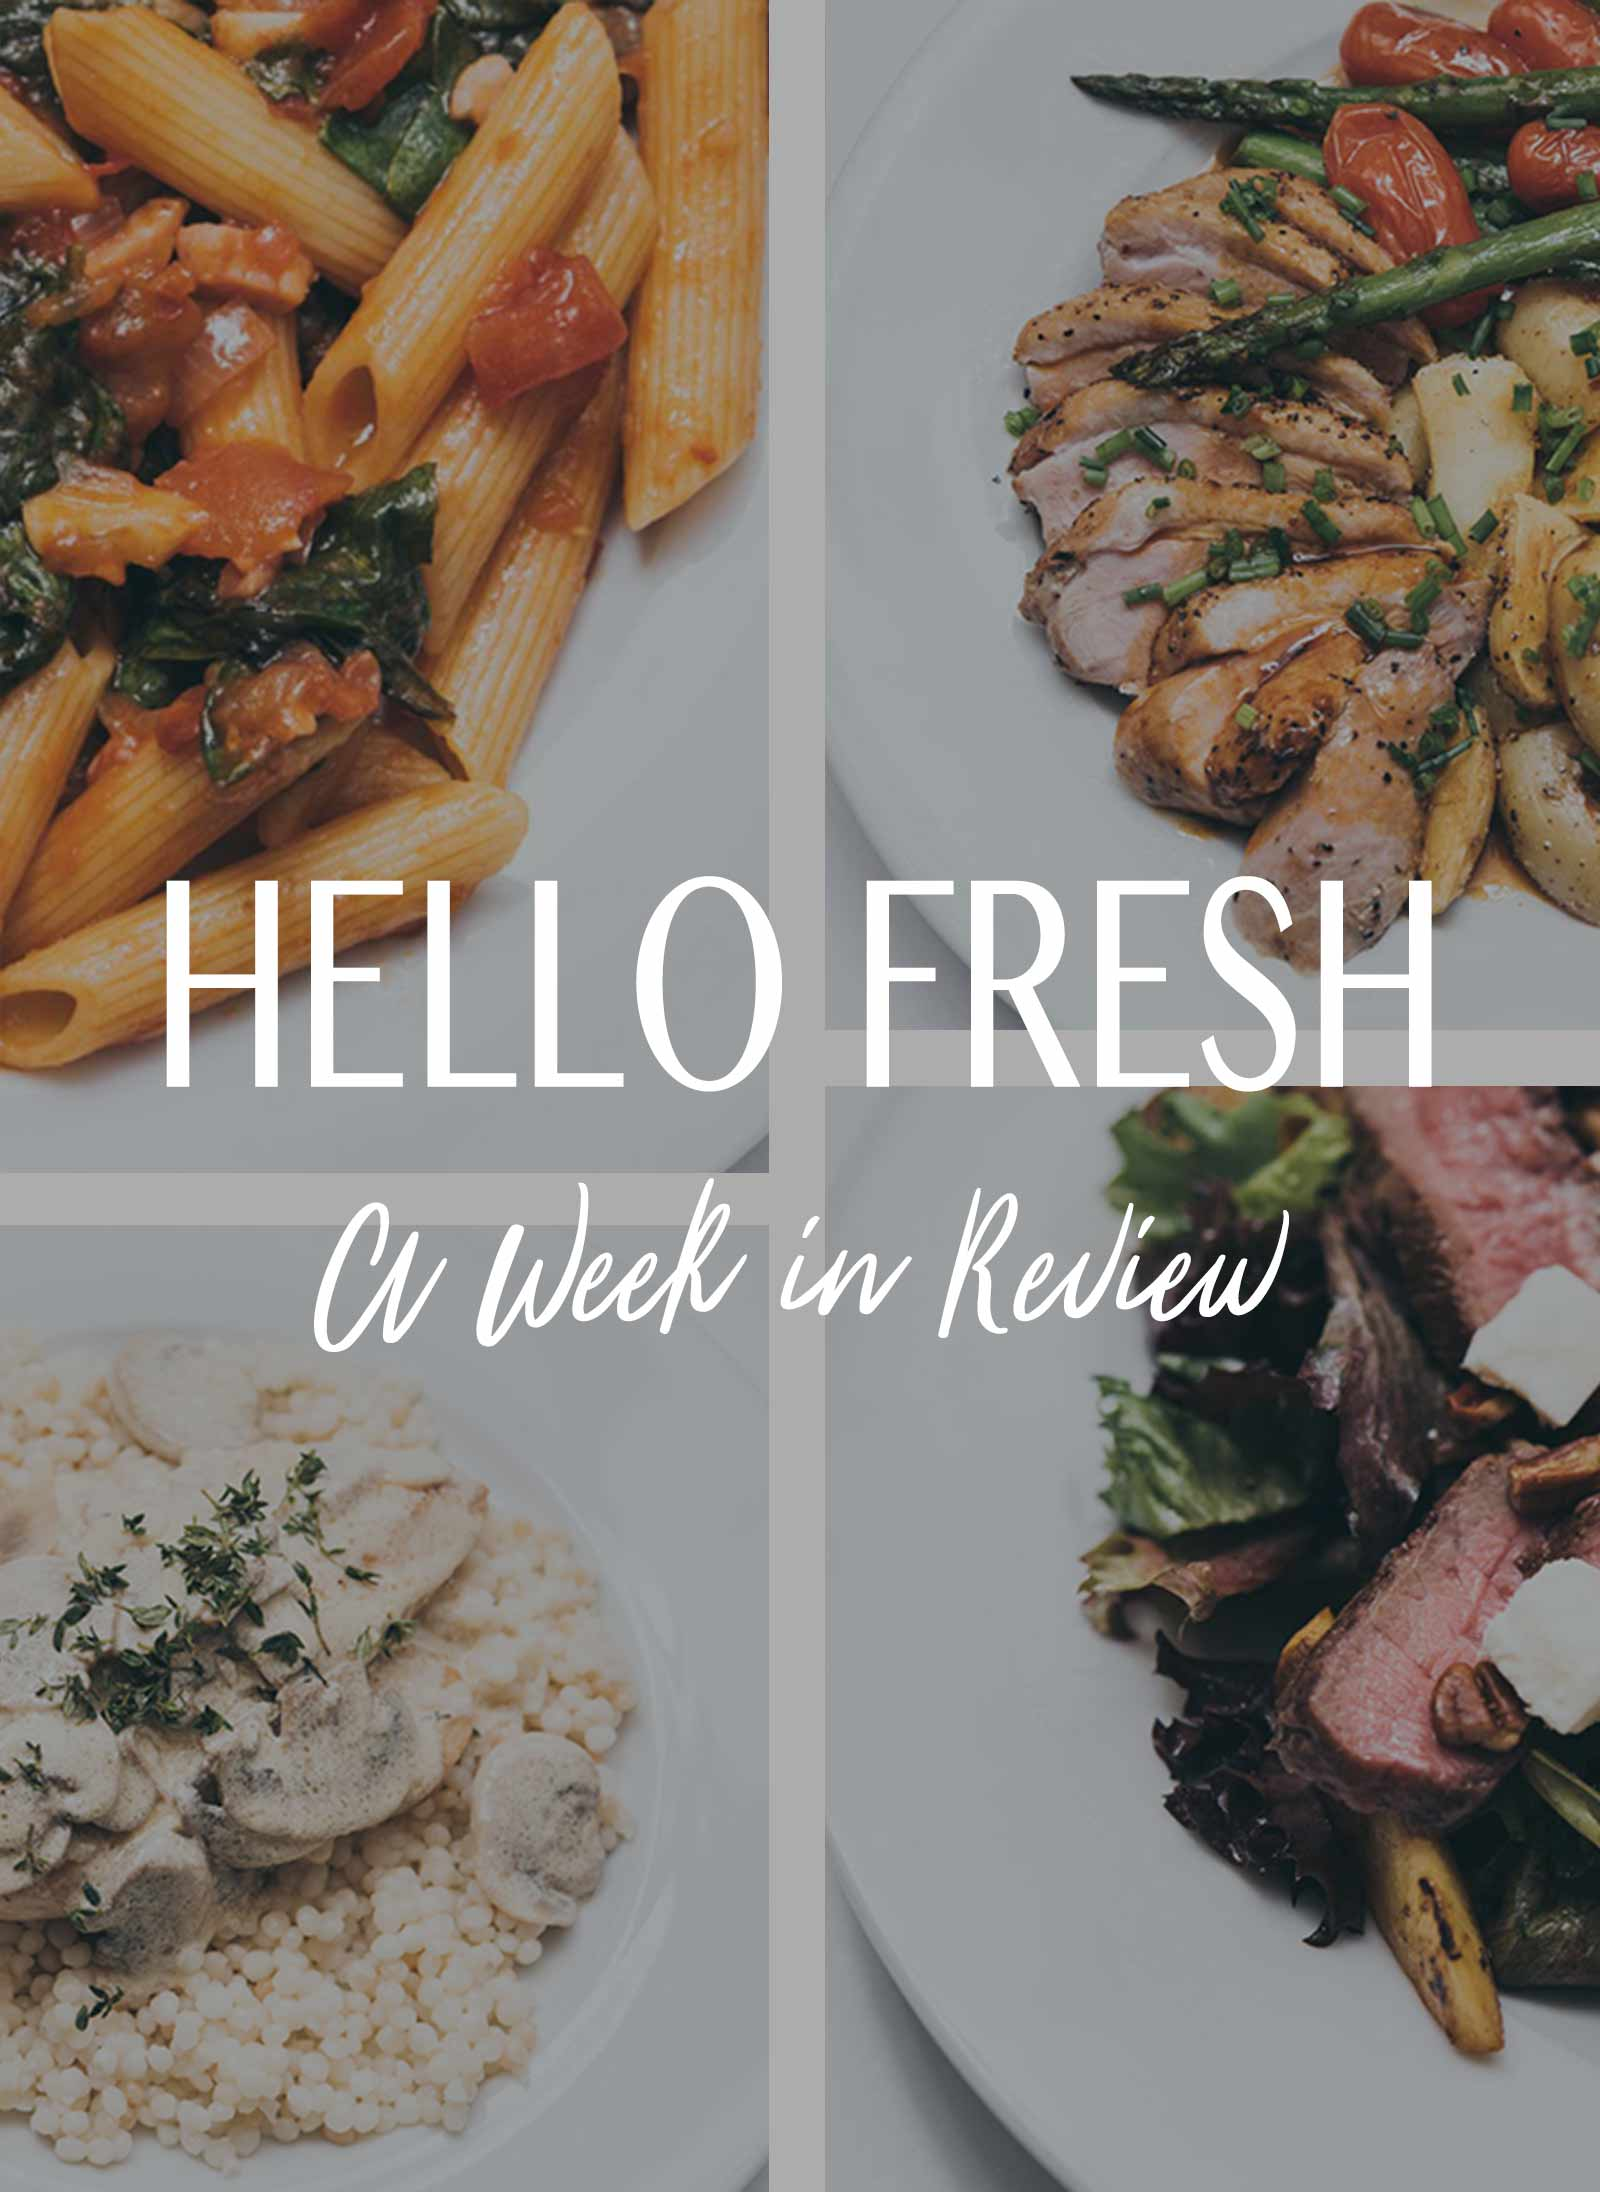 Hellofresh Meal Kit Delivery Service For Sale Second Hand